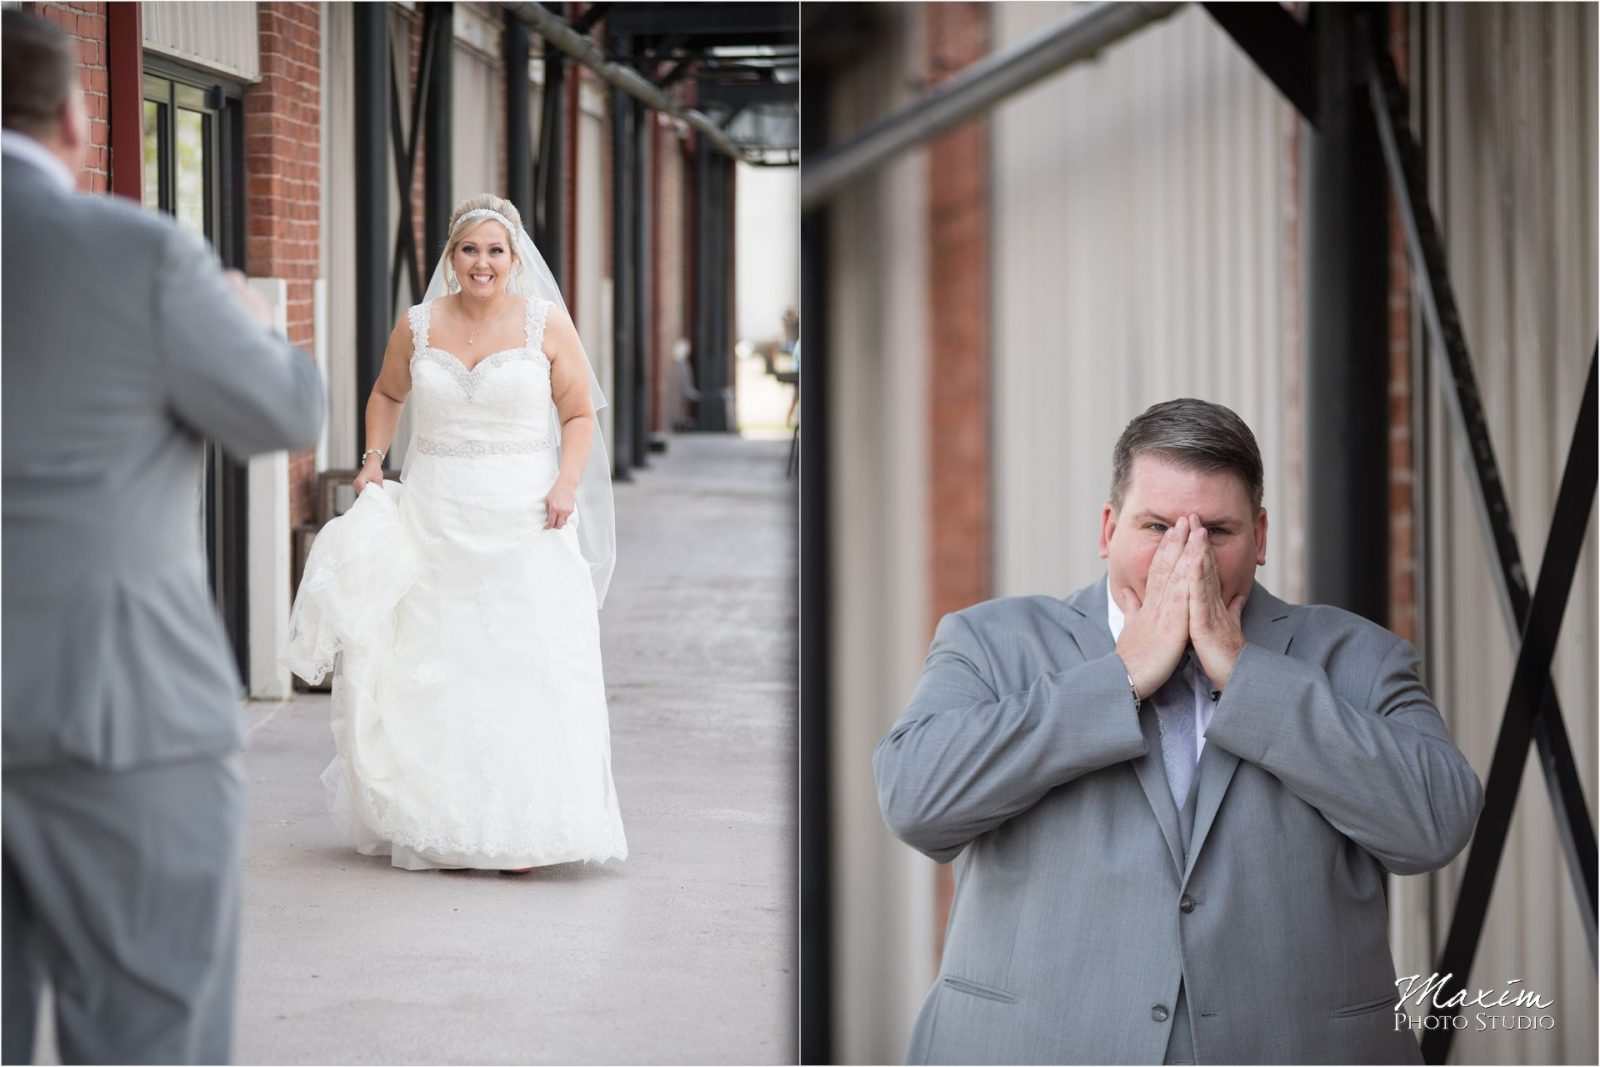 Top of the Market Dayton Ohio Wedding first look